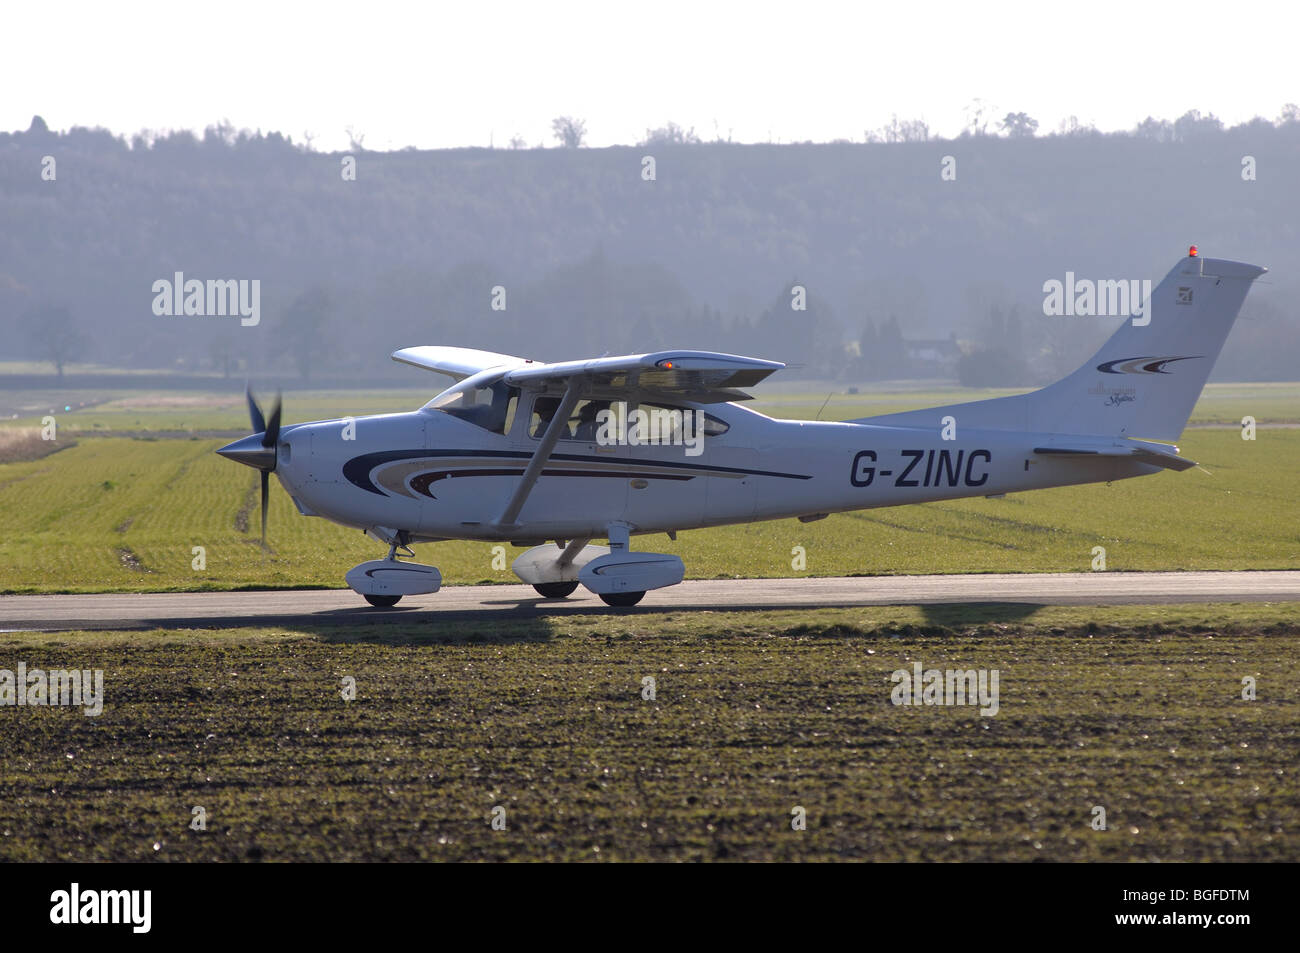 Cessna 182 Skylane aircraft G-ZINC taxiing at Wellesbourne Airfield, Warwickshire, UK - Stock Image